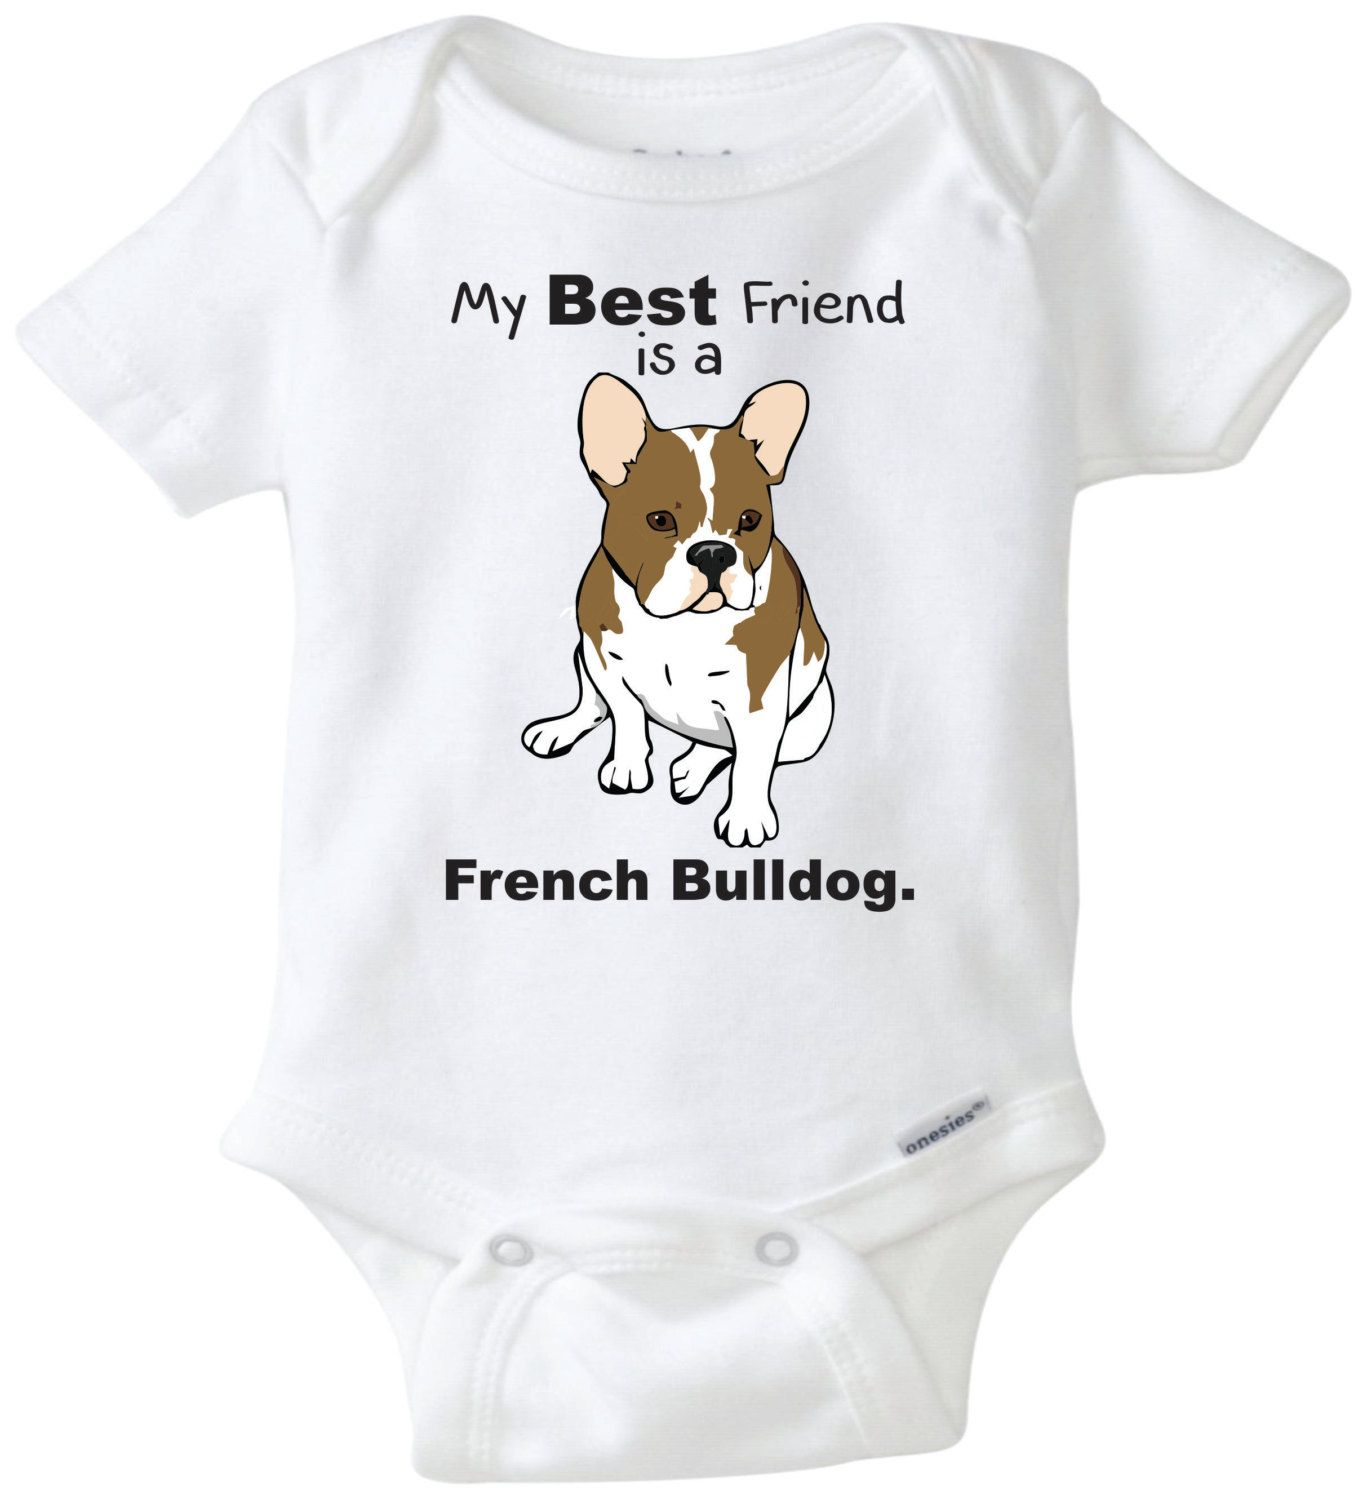 My Best Friend Is A French Bulldog Baby Onesie Dog Lover Family Pet Newborn Outfit Breed Shower Gift